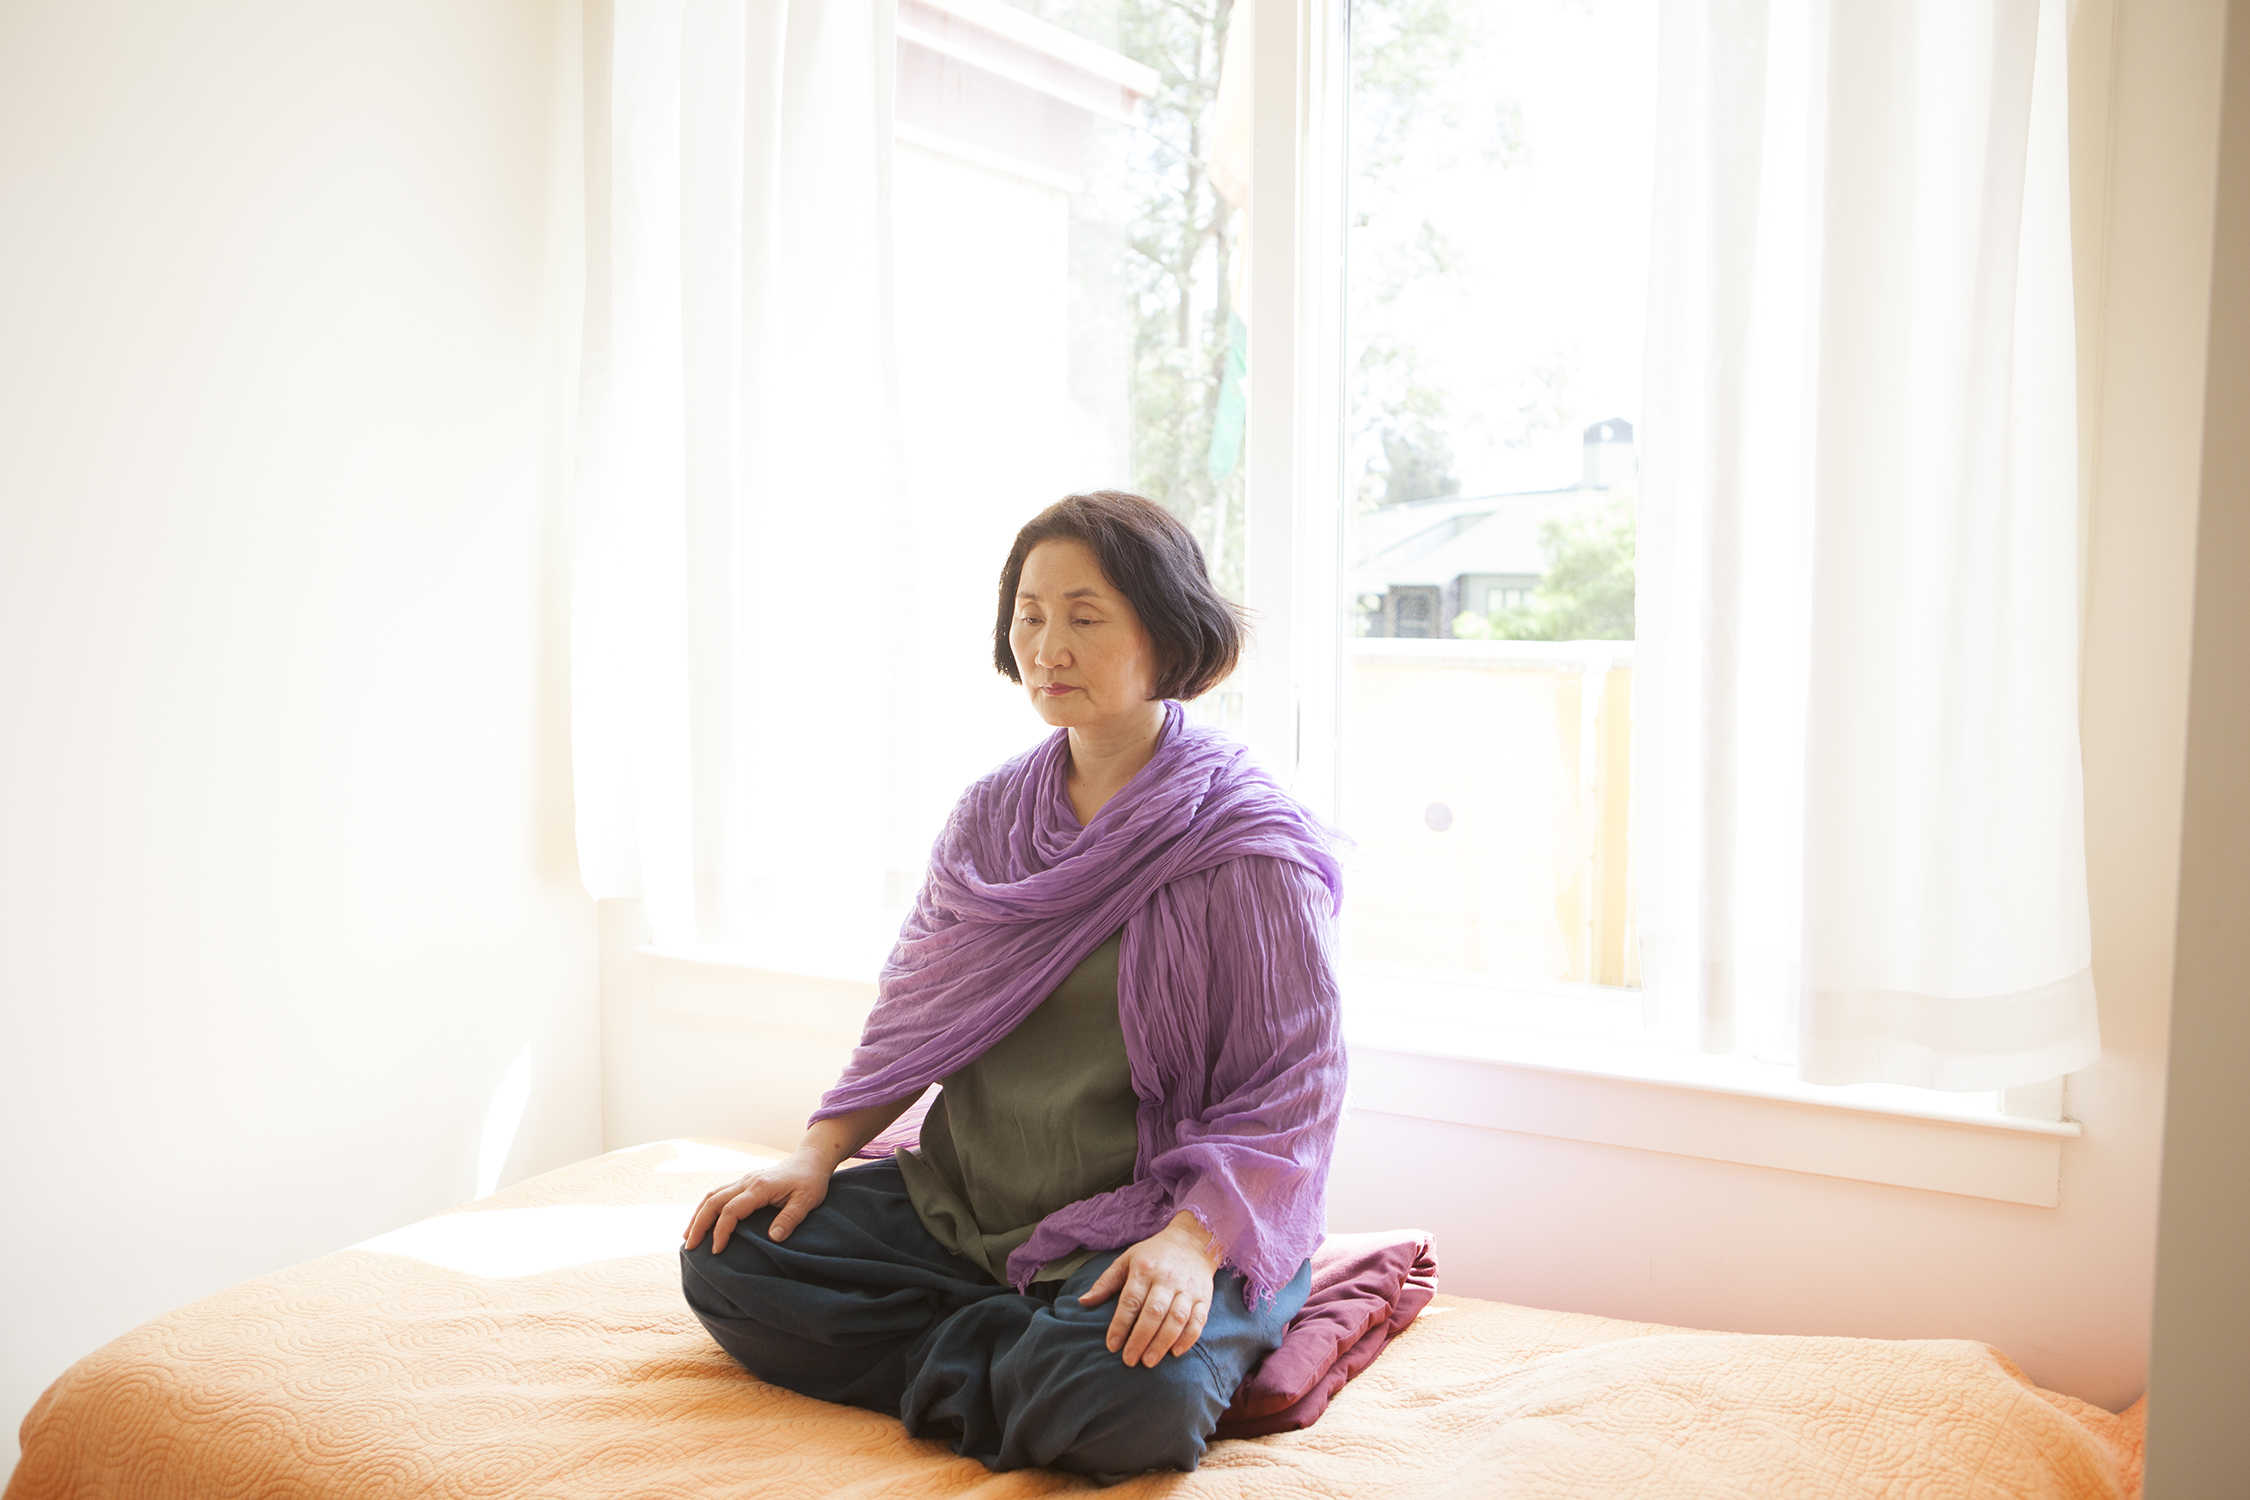 Image of a student meditating on a bed